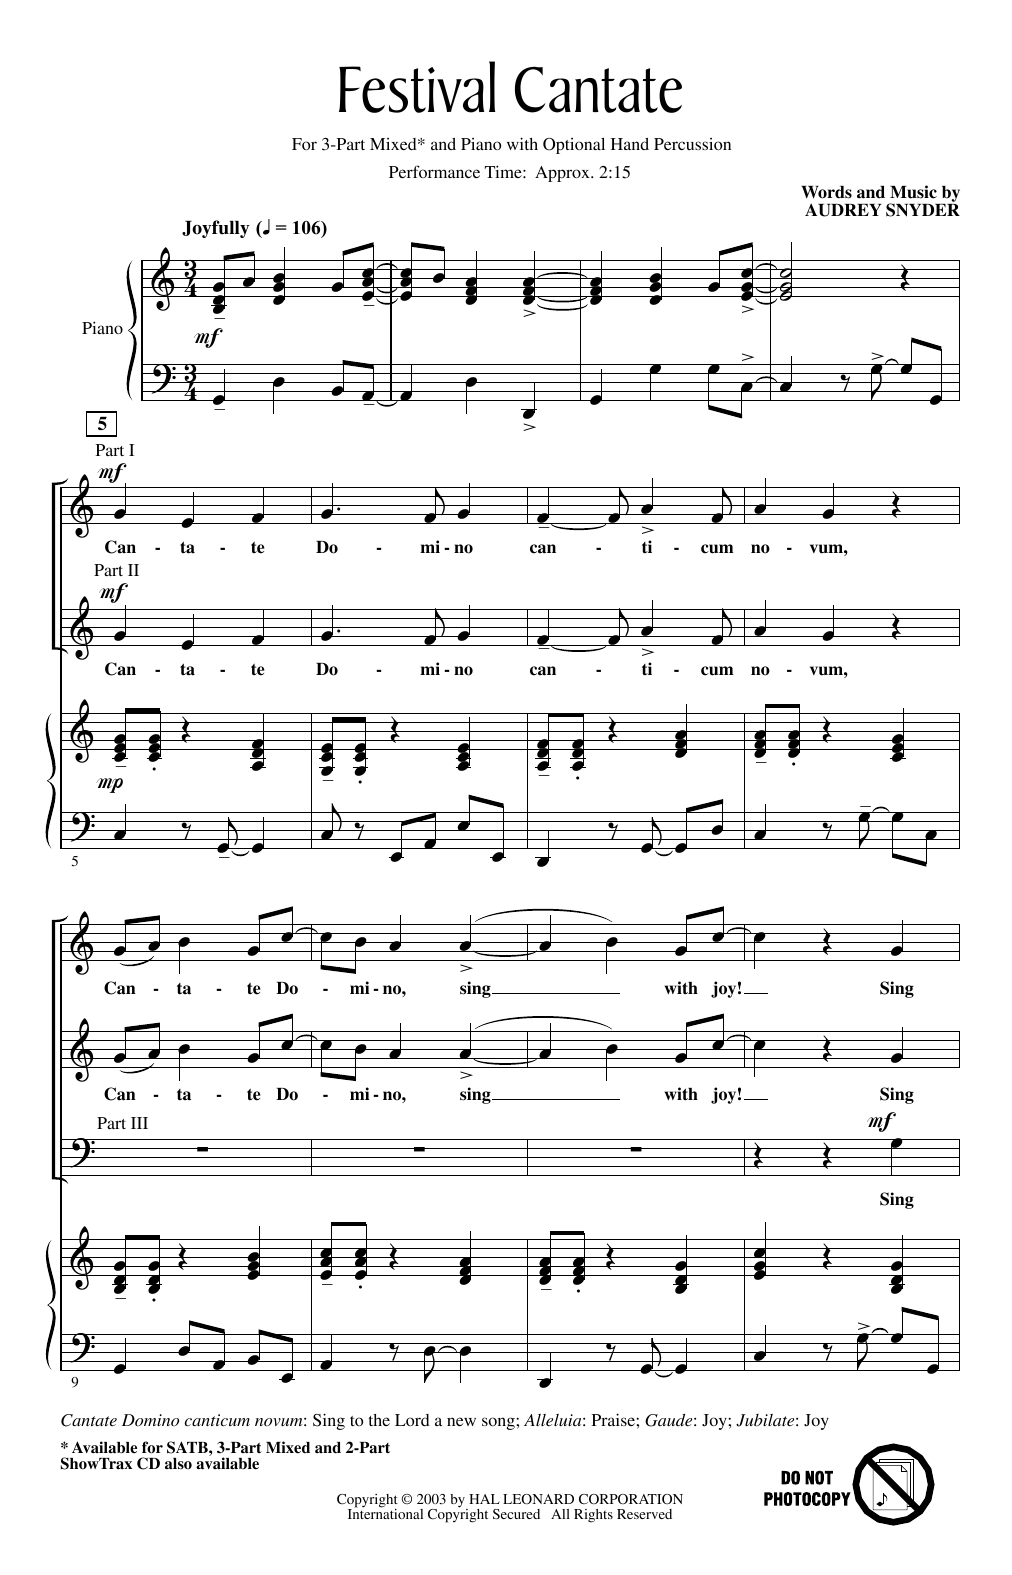 Audrey Snyder Festival Cantate sheet music notes and chords